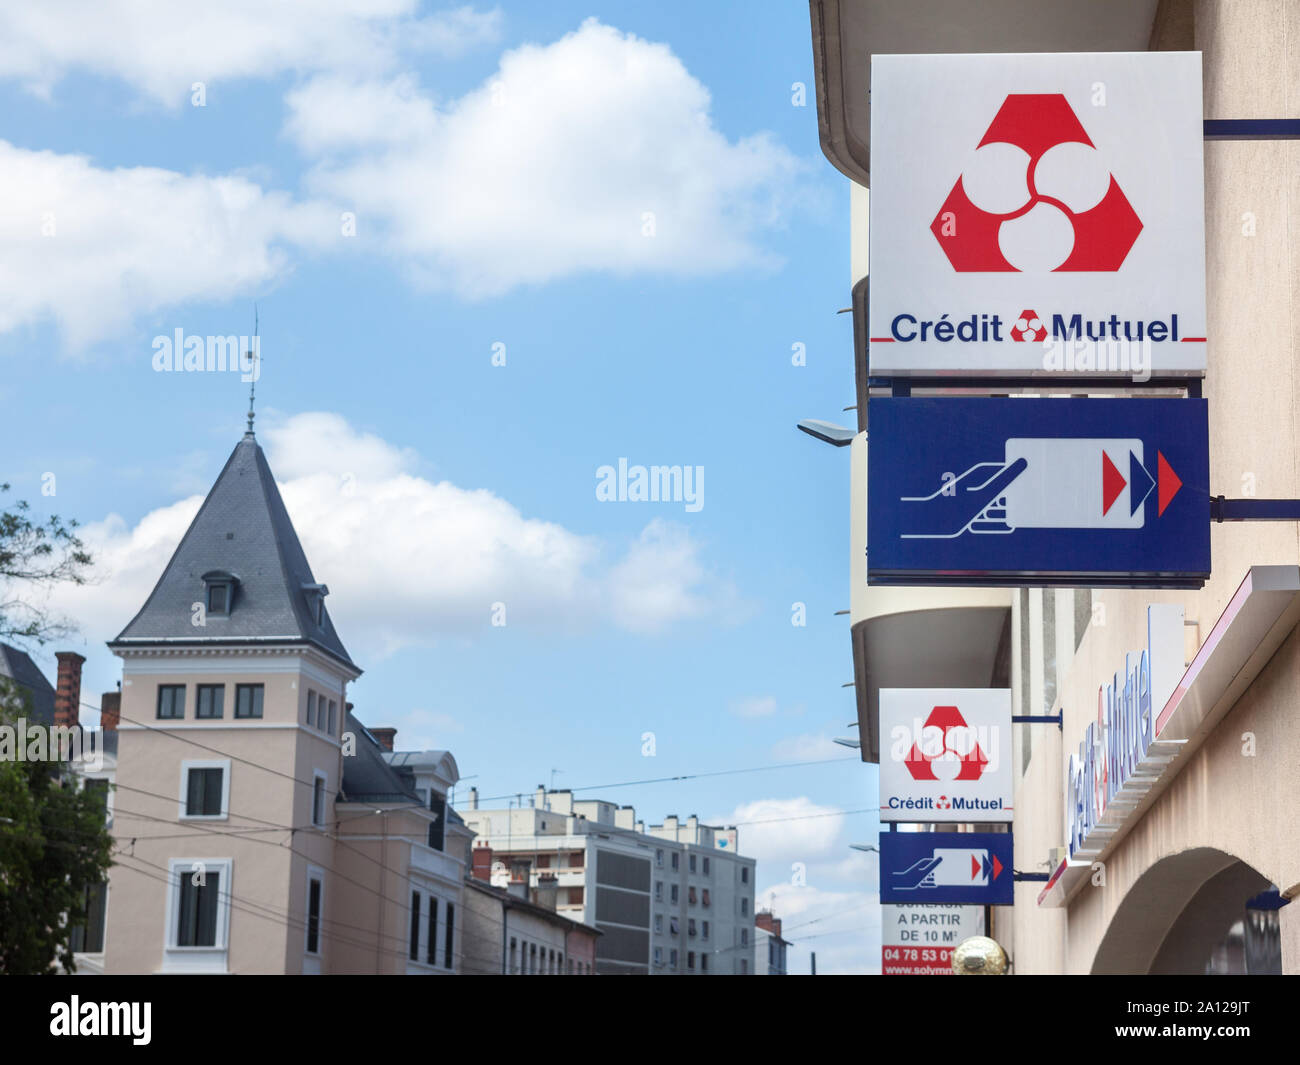 Lyon France July 15 2019 Credit Mutuel Logo In Front Of